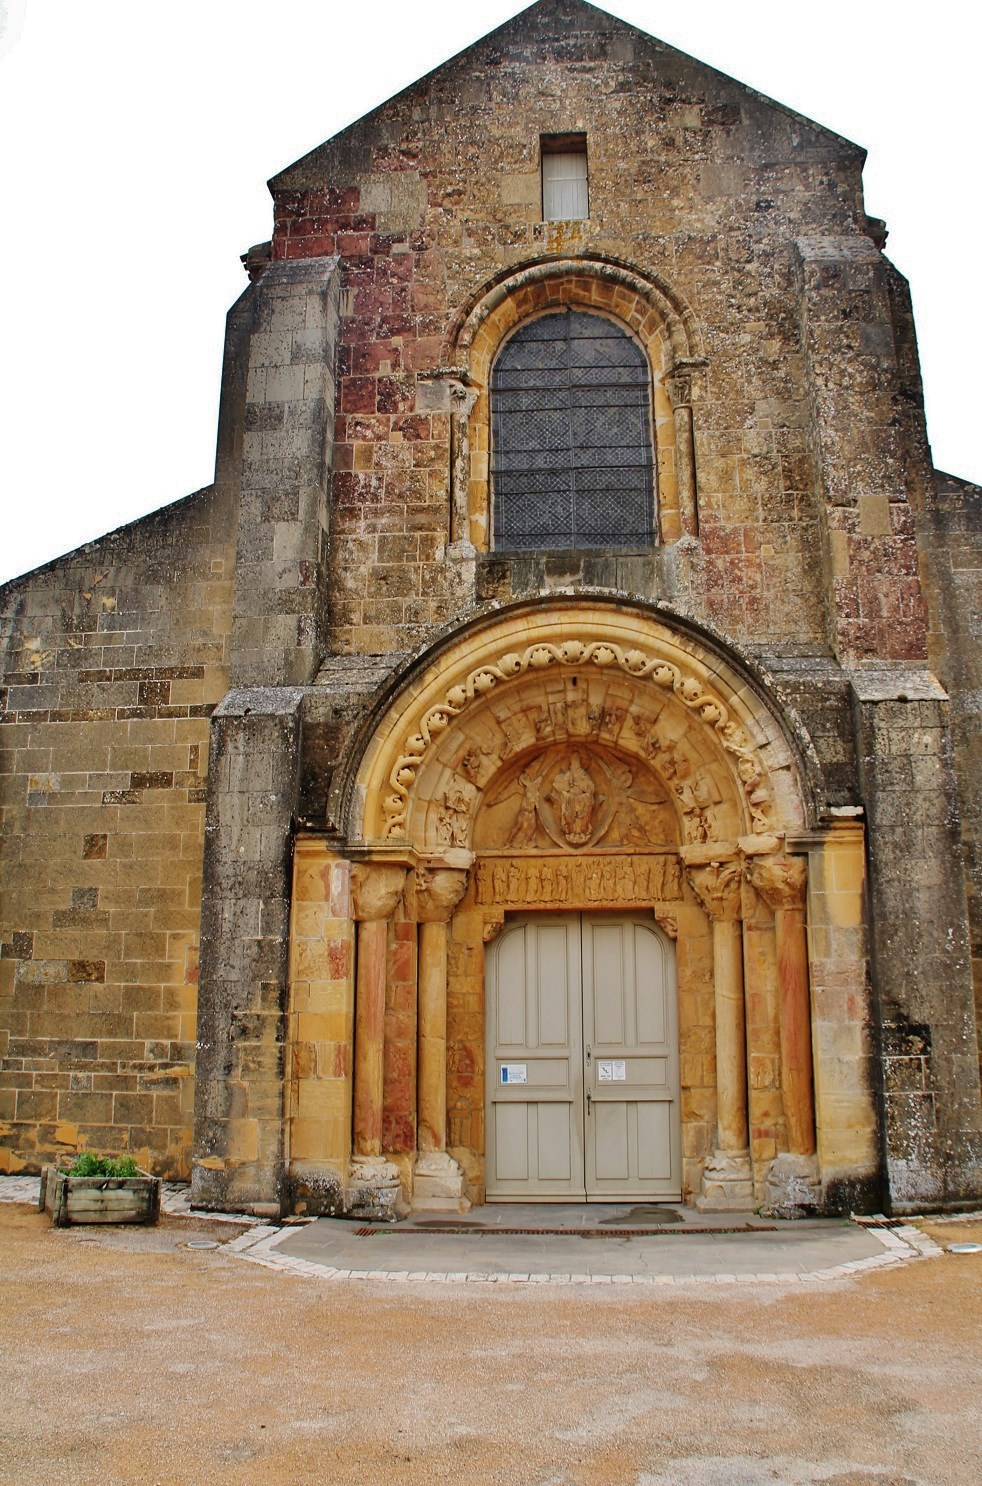 Church of Notre-Dame of the assumption to Anzy le duc.